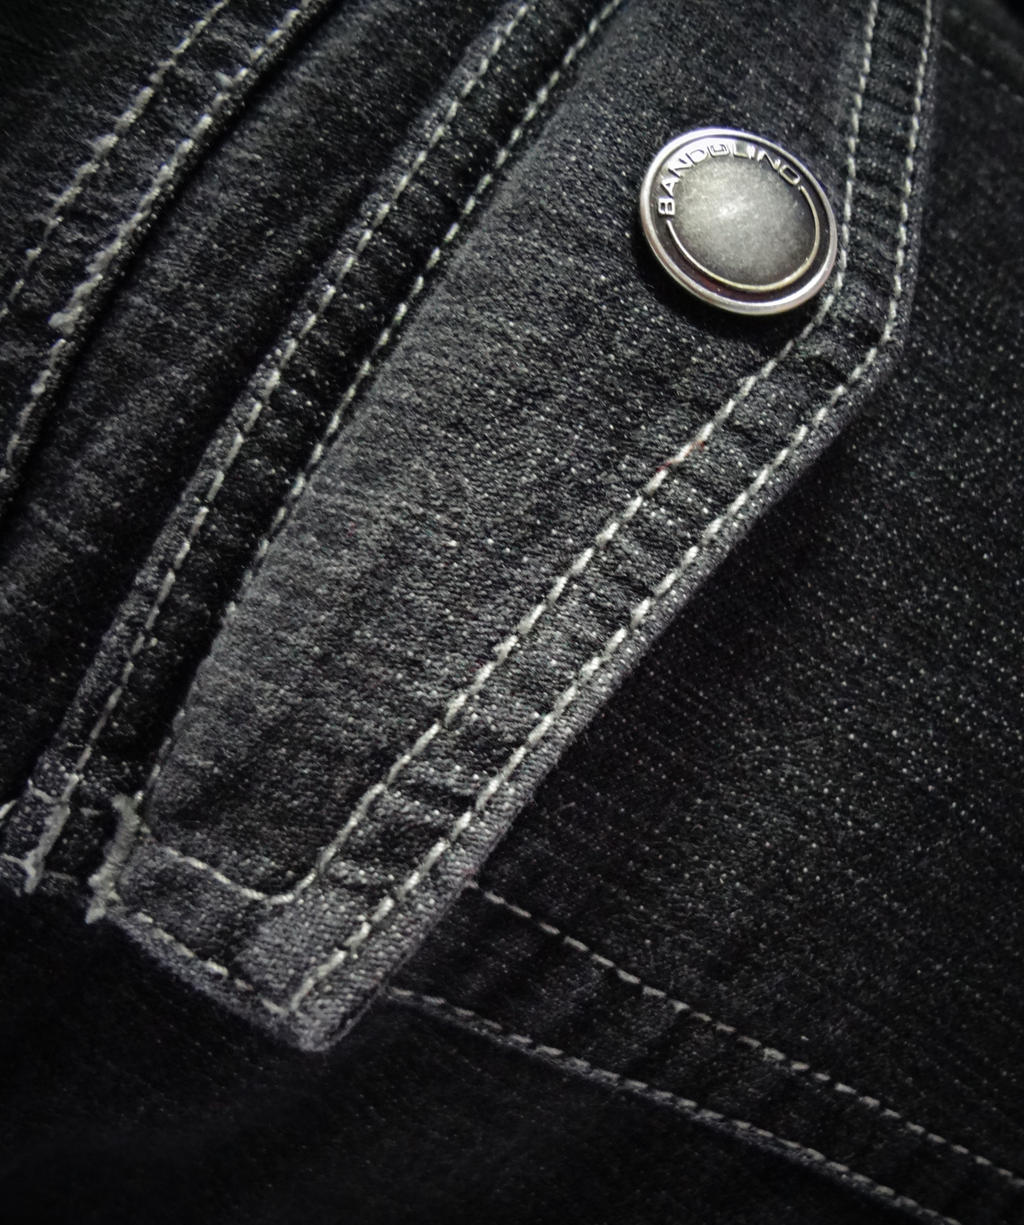 Pocket and Buttons by Echos-in-the-Shadows